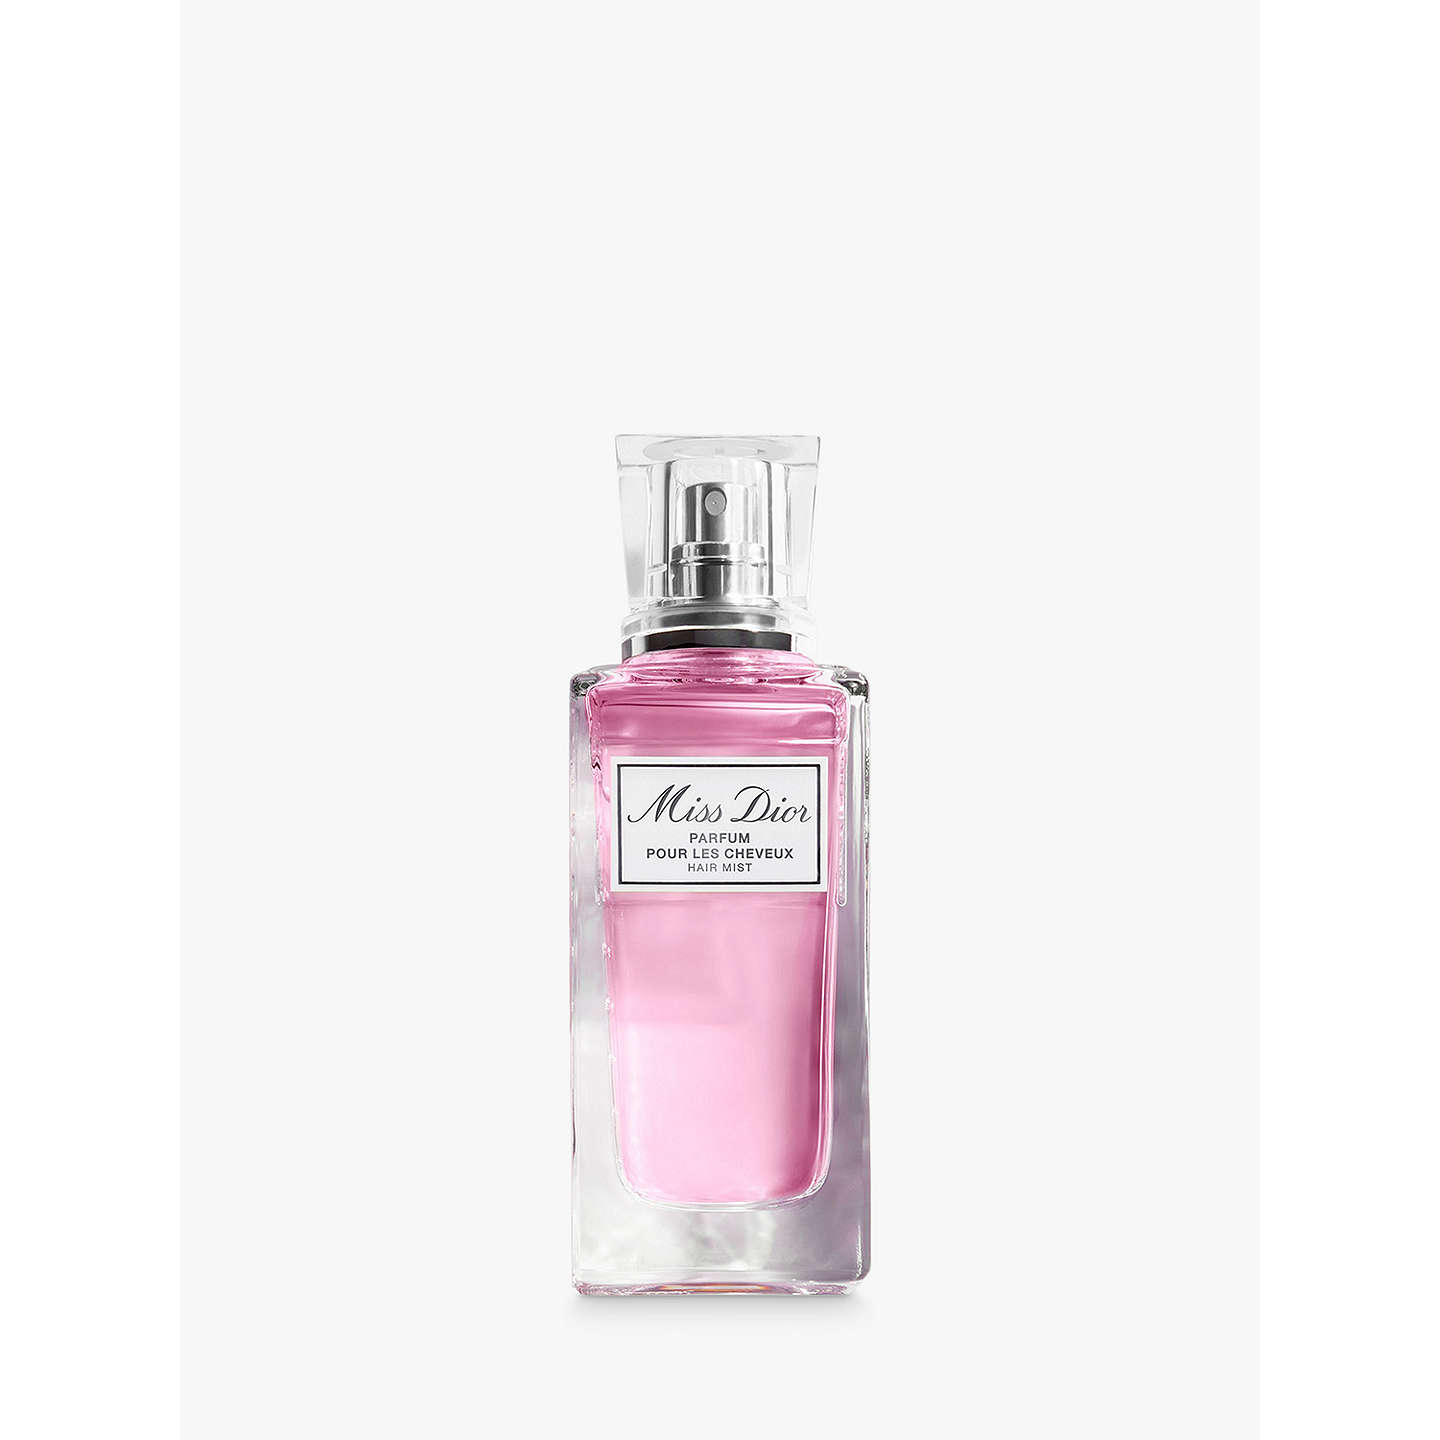 BuyDior Miss Dior Hair Mist, 30ml Online at johnlewis.com